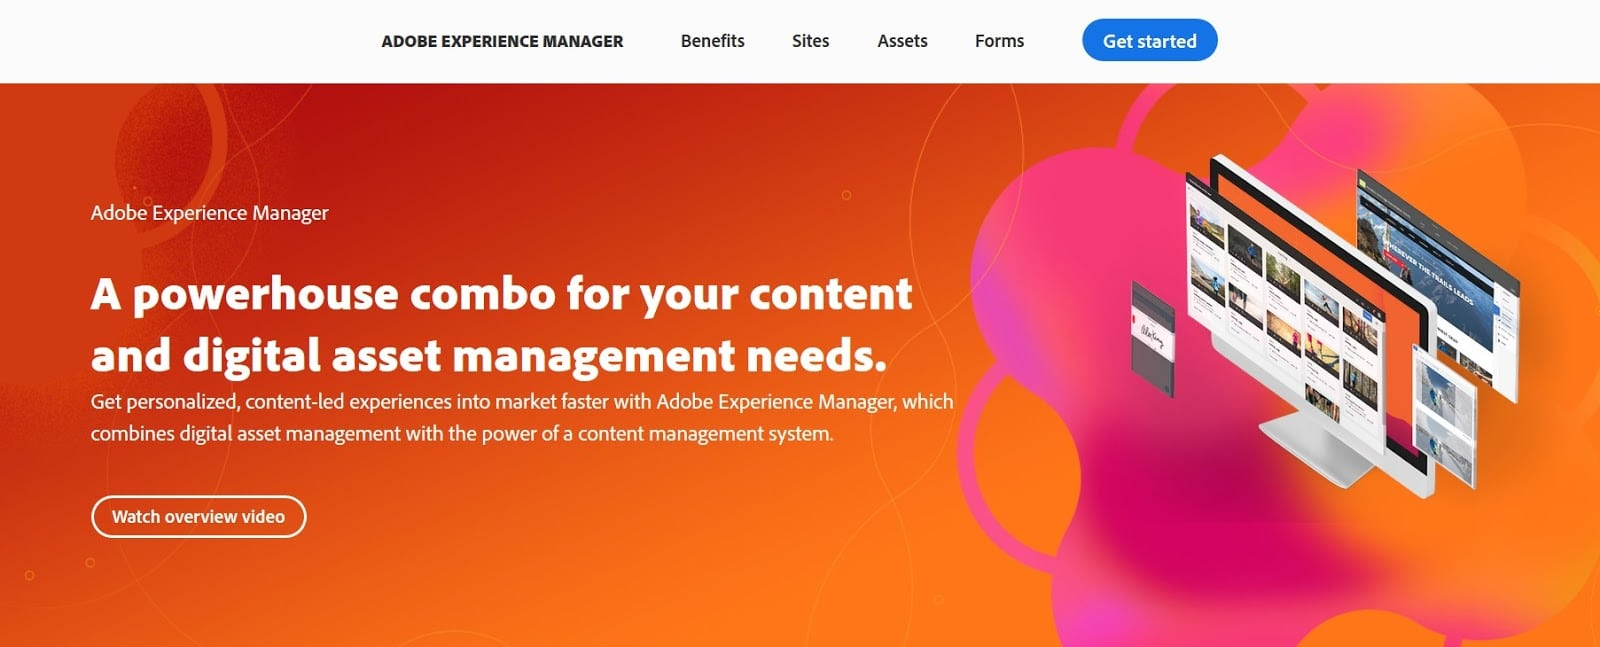 Adobe Experience Manager